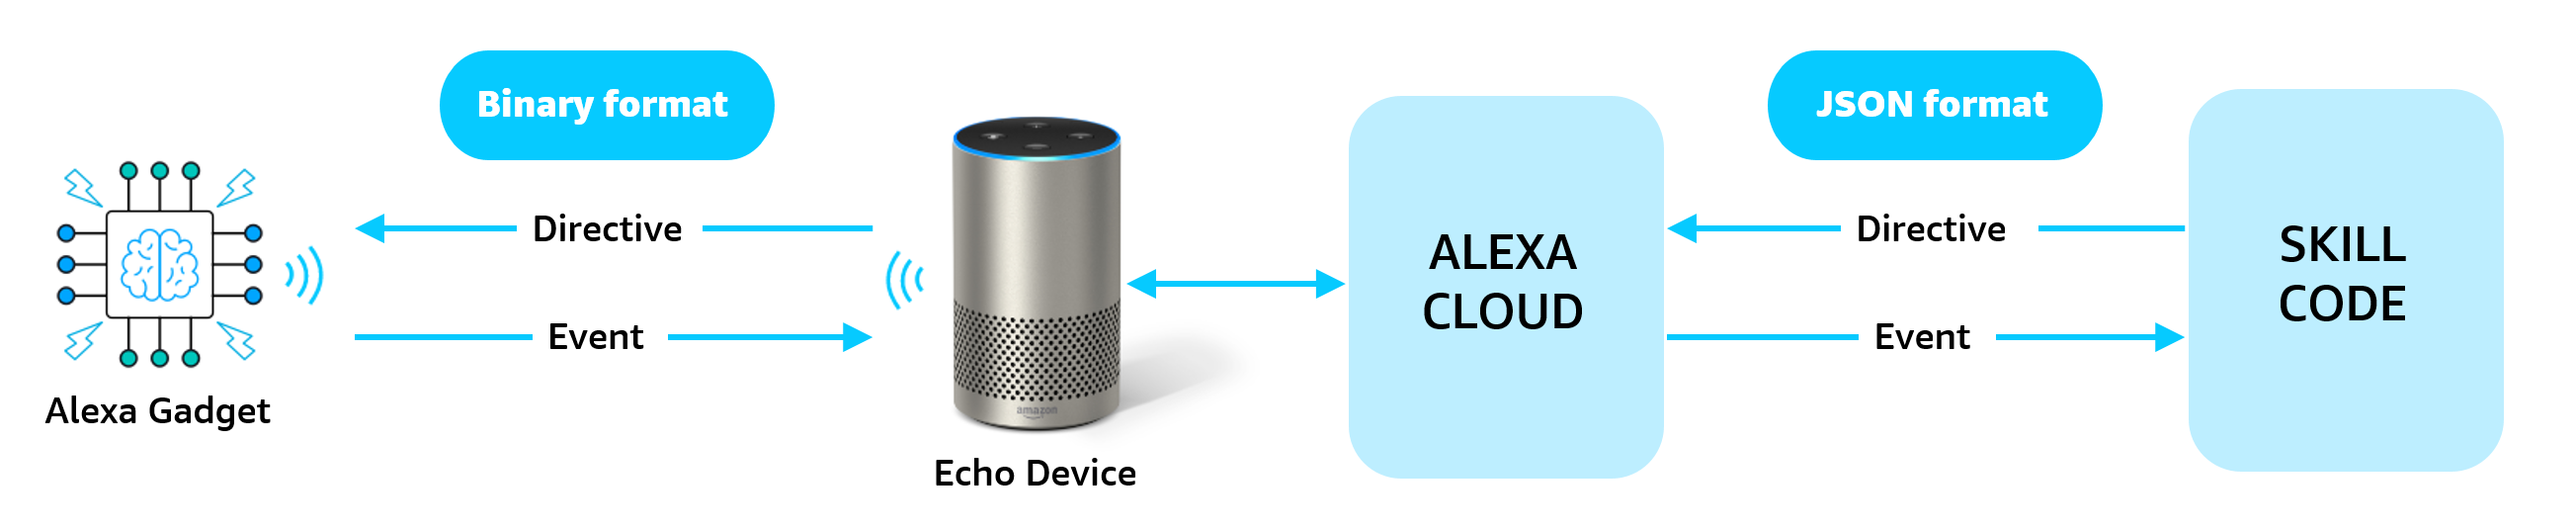 Passage of directives and events from an Alexa gadget to an Alexa skill.